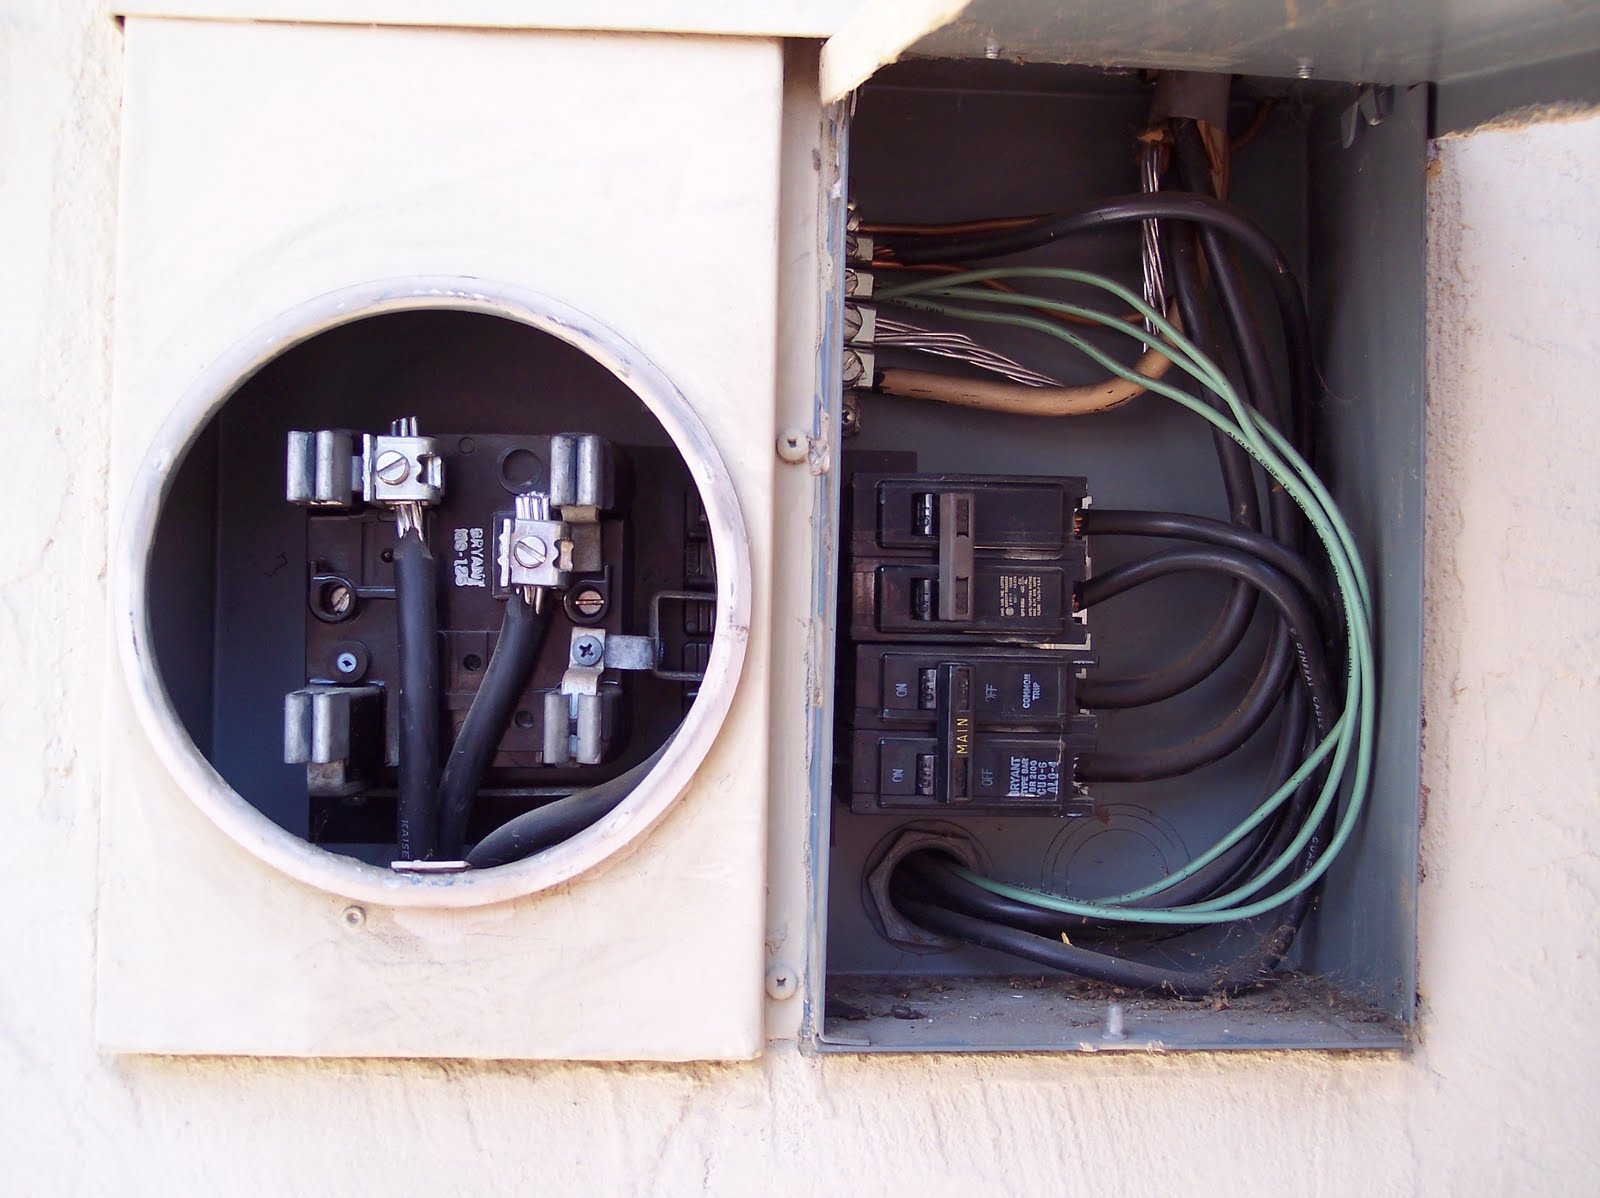 medium resolution of electric meter bryant ms 125 needs the load socket and bus bar replaced aluminum wires from main